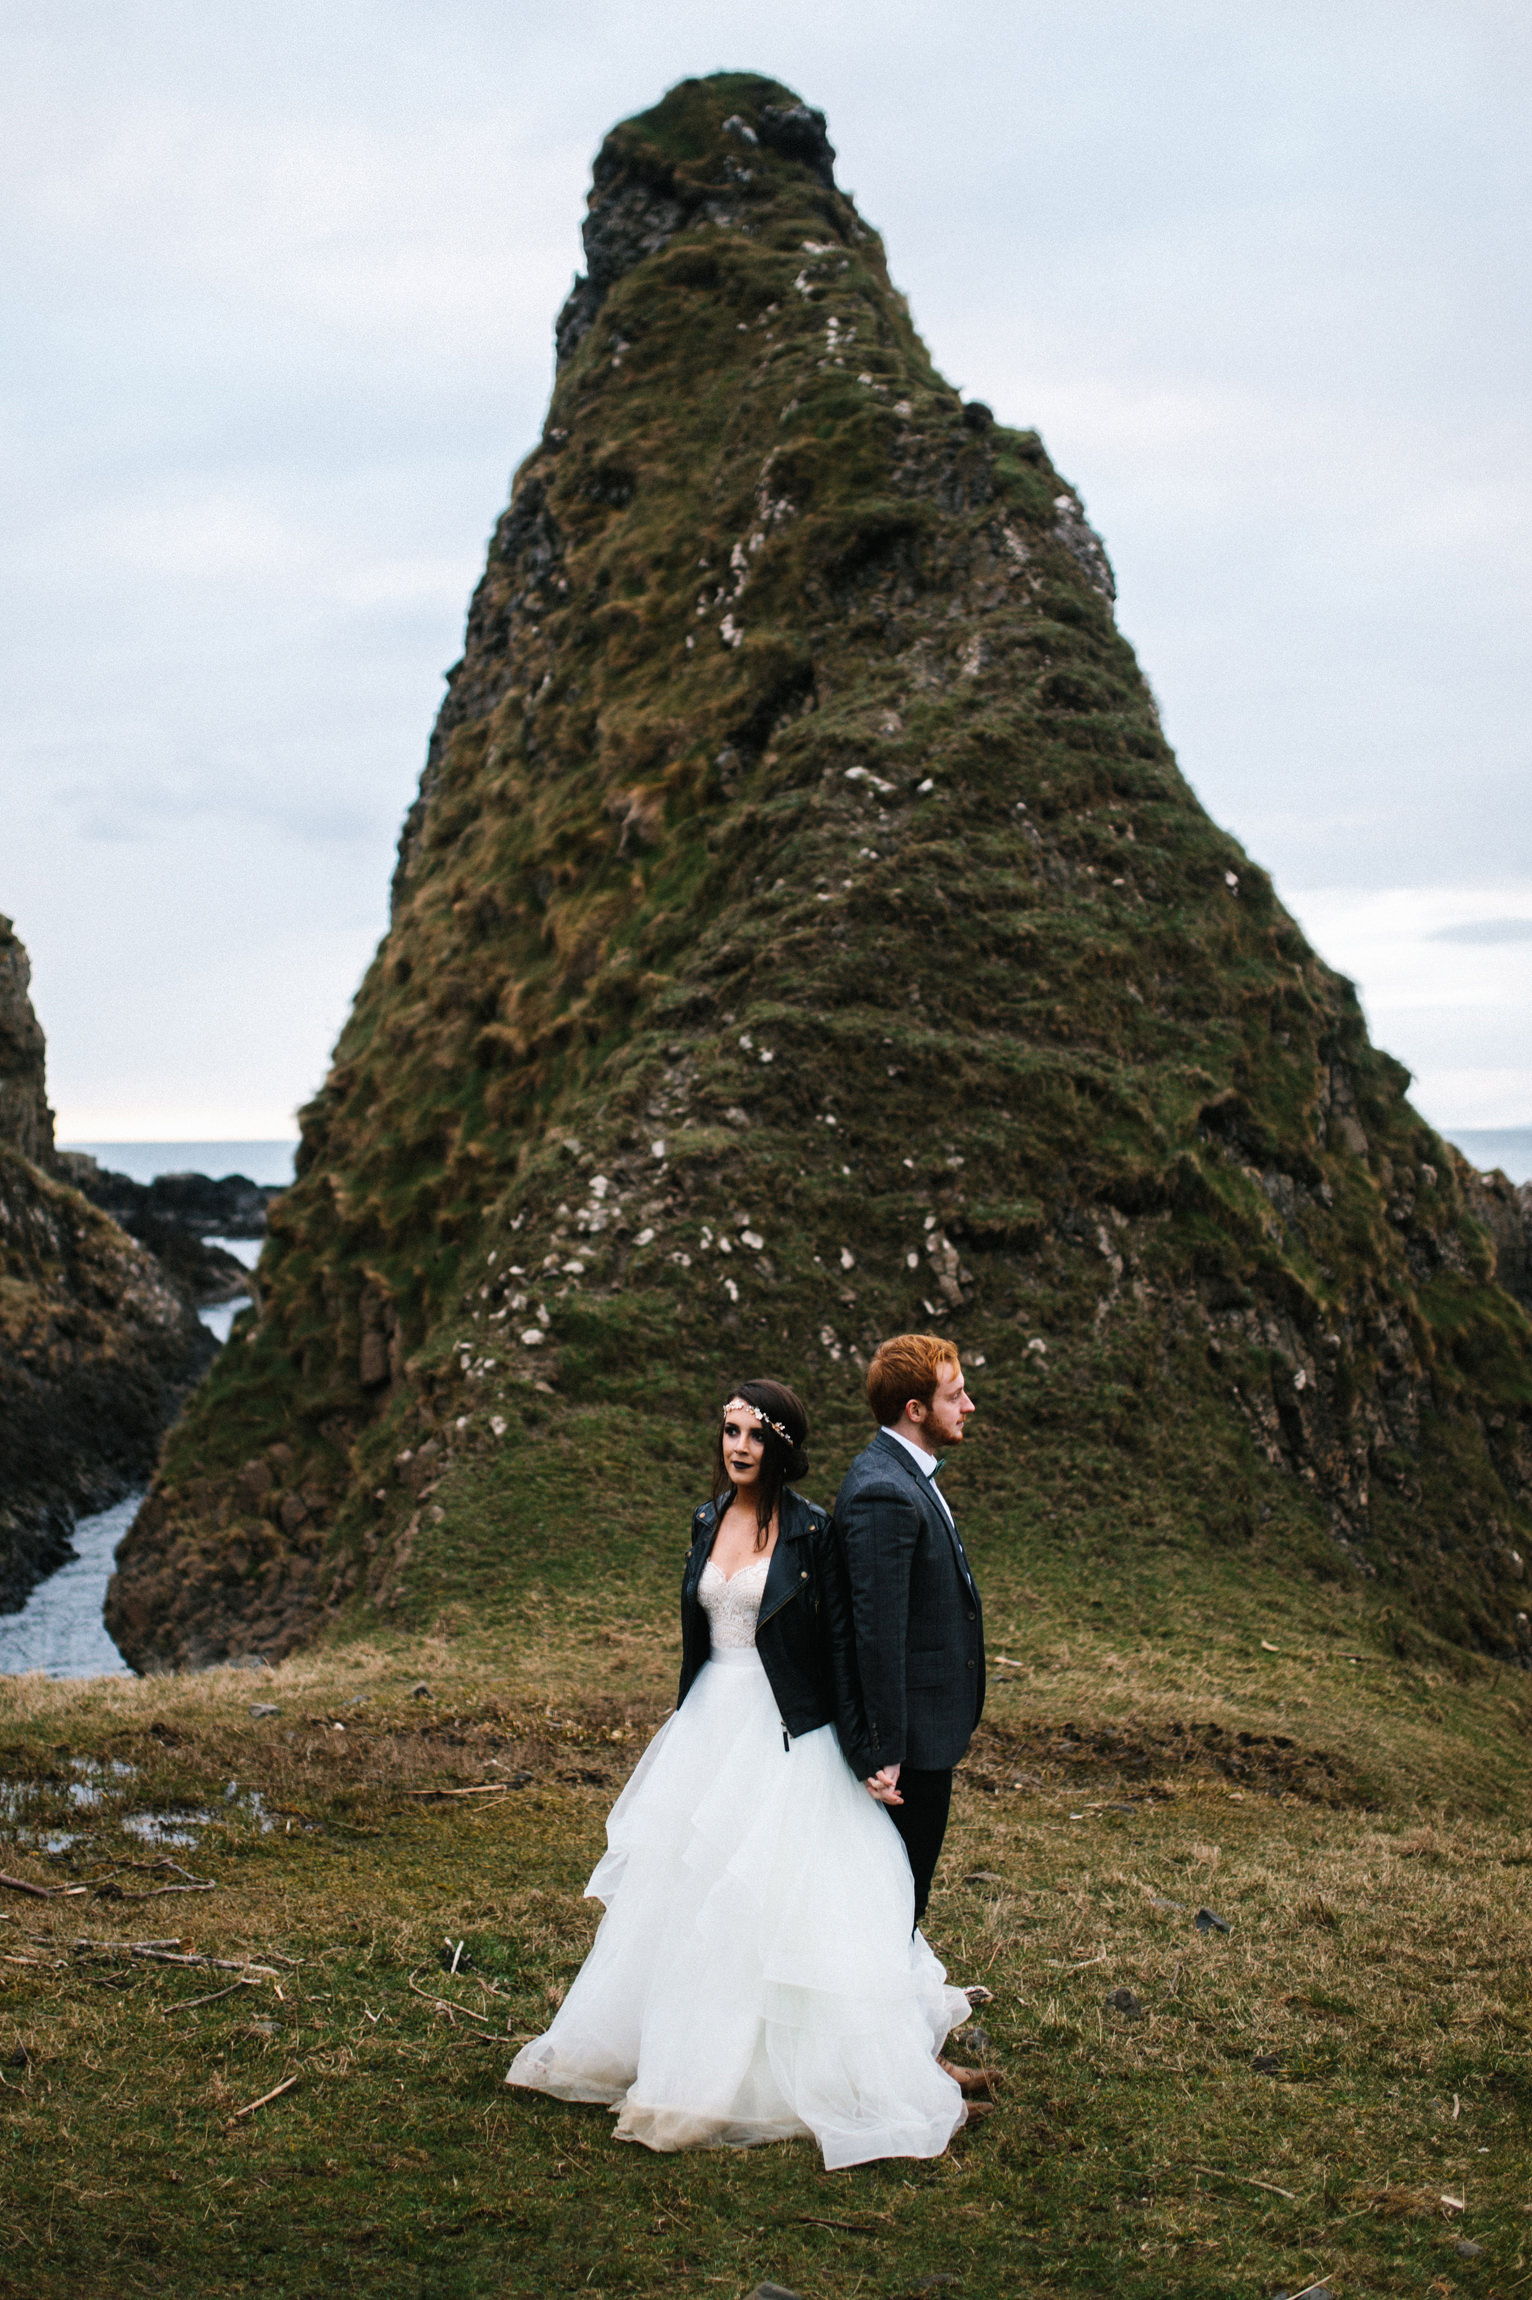 1-1-1 Emma & Simon // Ireland Elopement Photographer